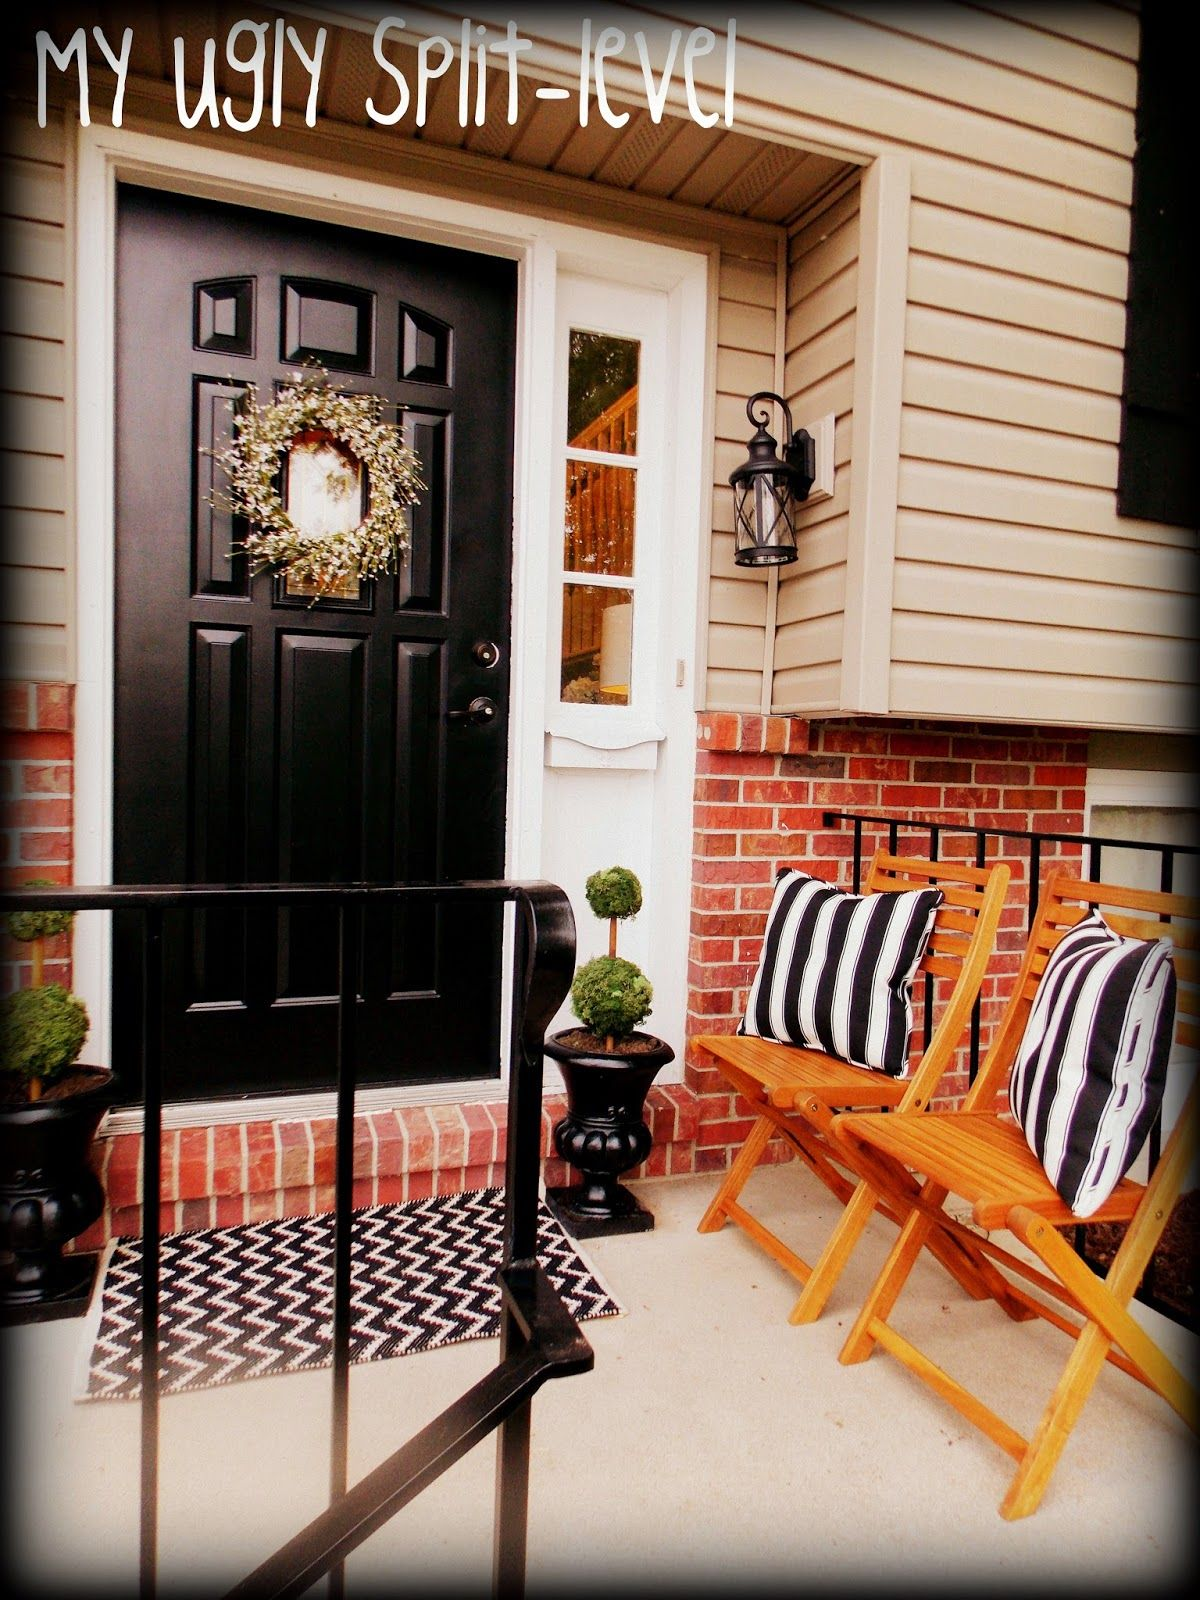 A Split Level Gets A Praire Style Facelift In Mclean Va: My Ugly Split-level: Inexpensive Curb Appeal